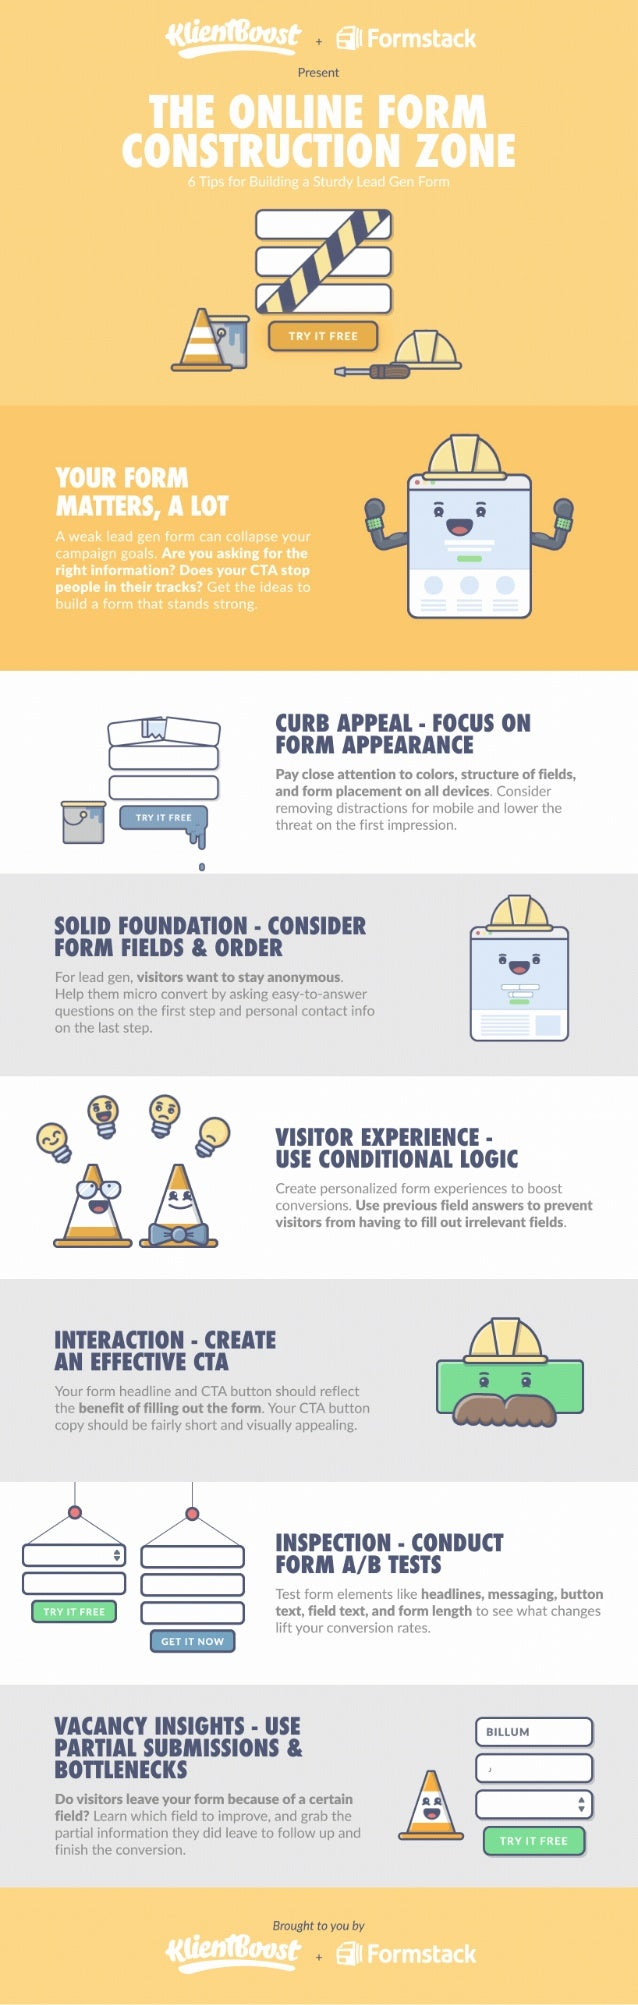 KlientBoost and Formstack Present: Landing Page Form [infographic]